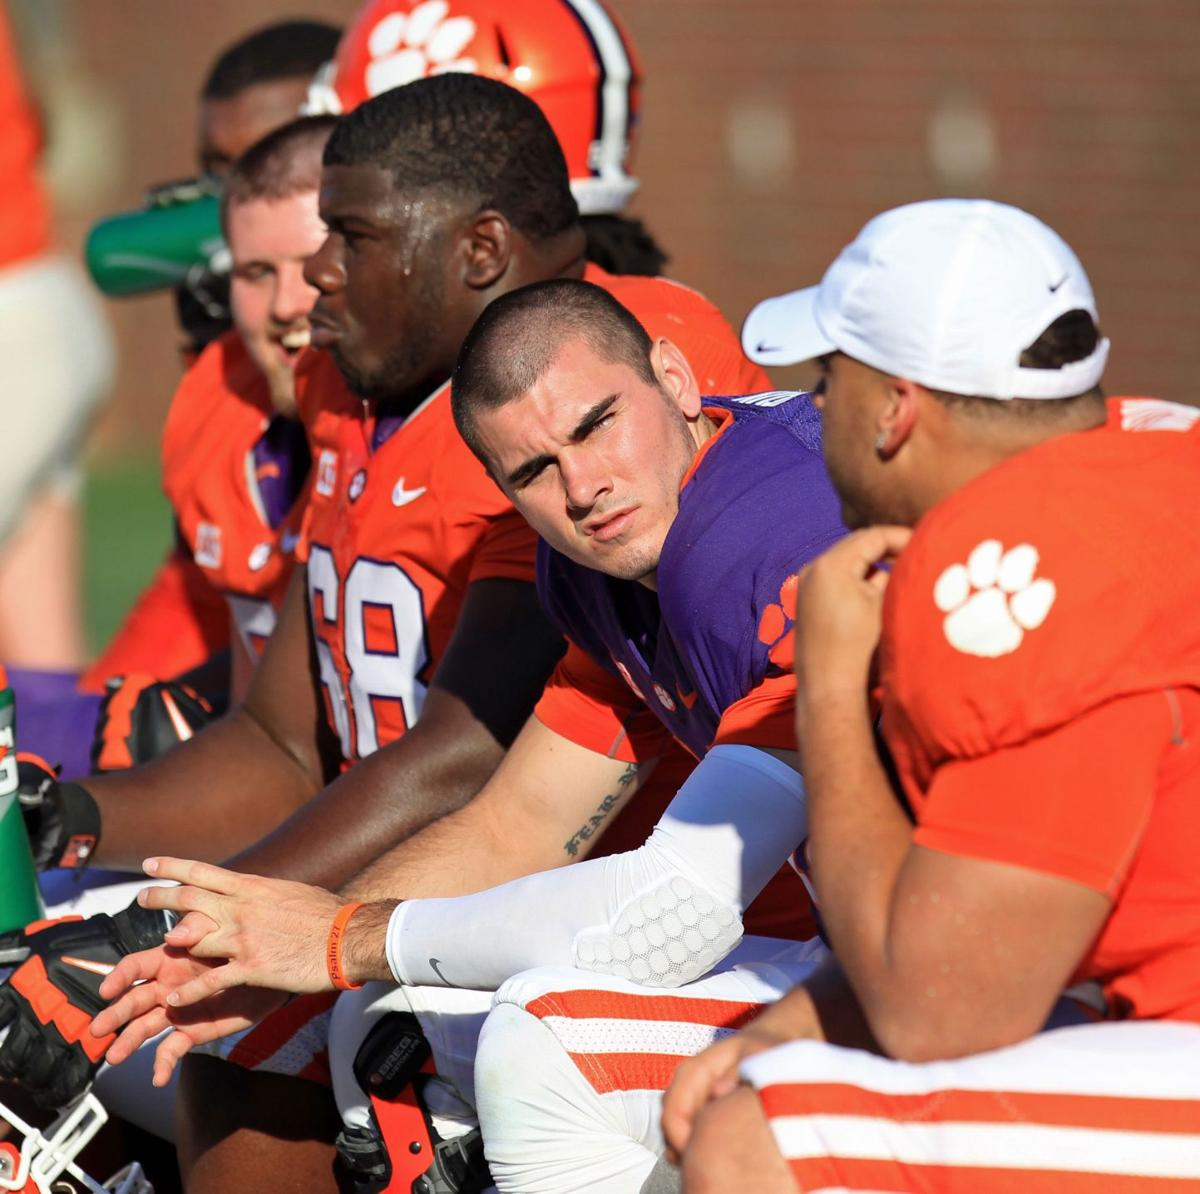 Former Clemson QB Chad Kelly headed to Mississippi junior college